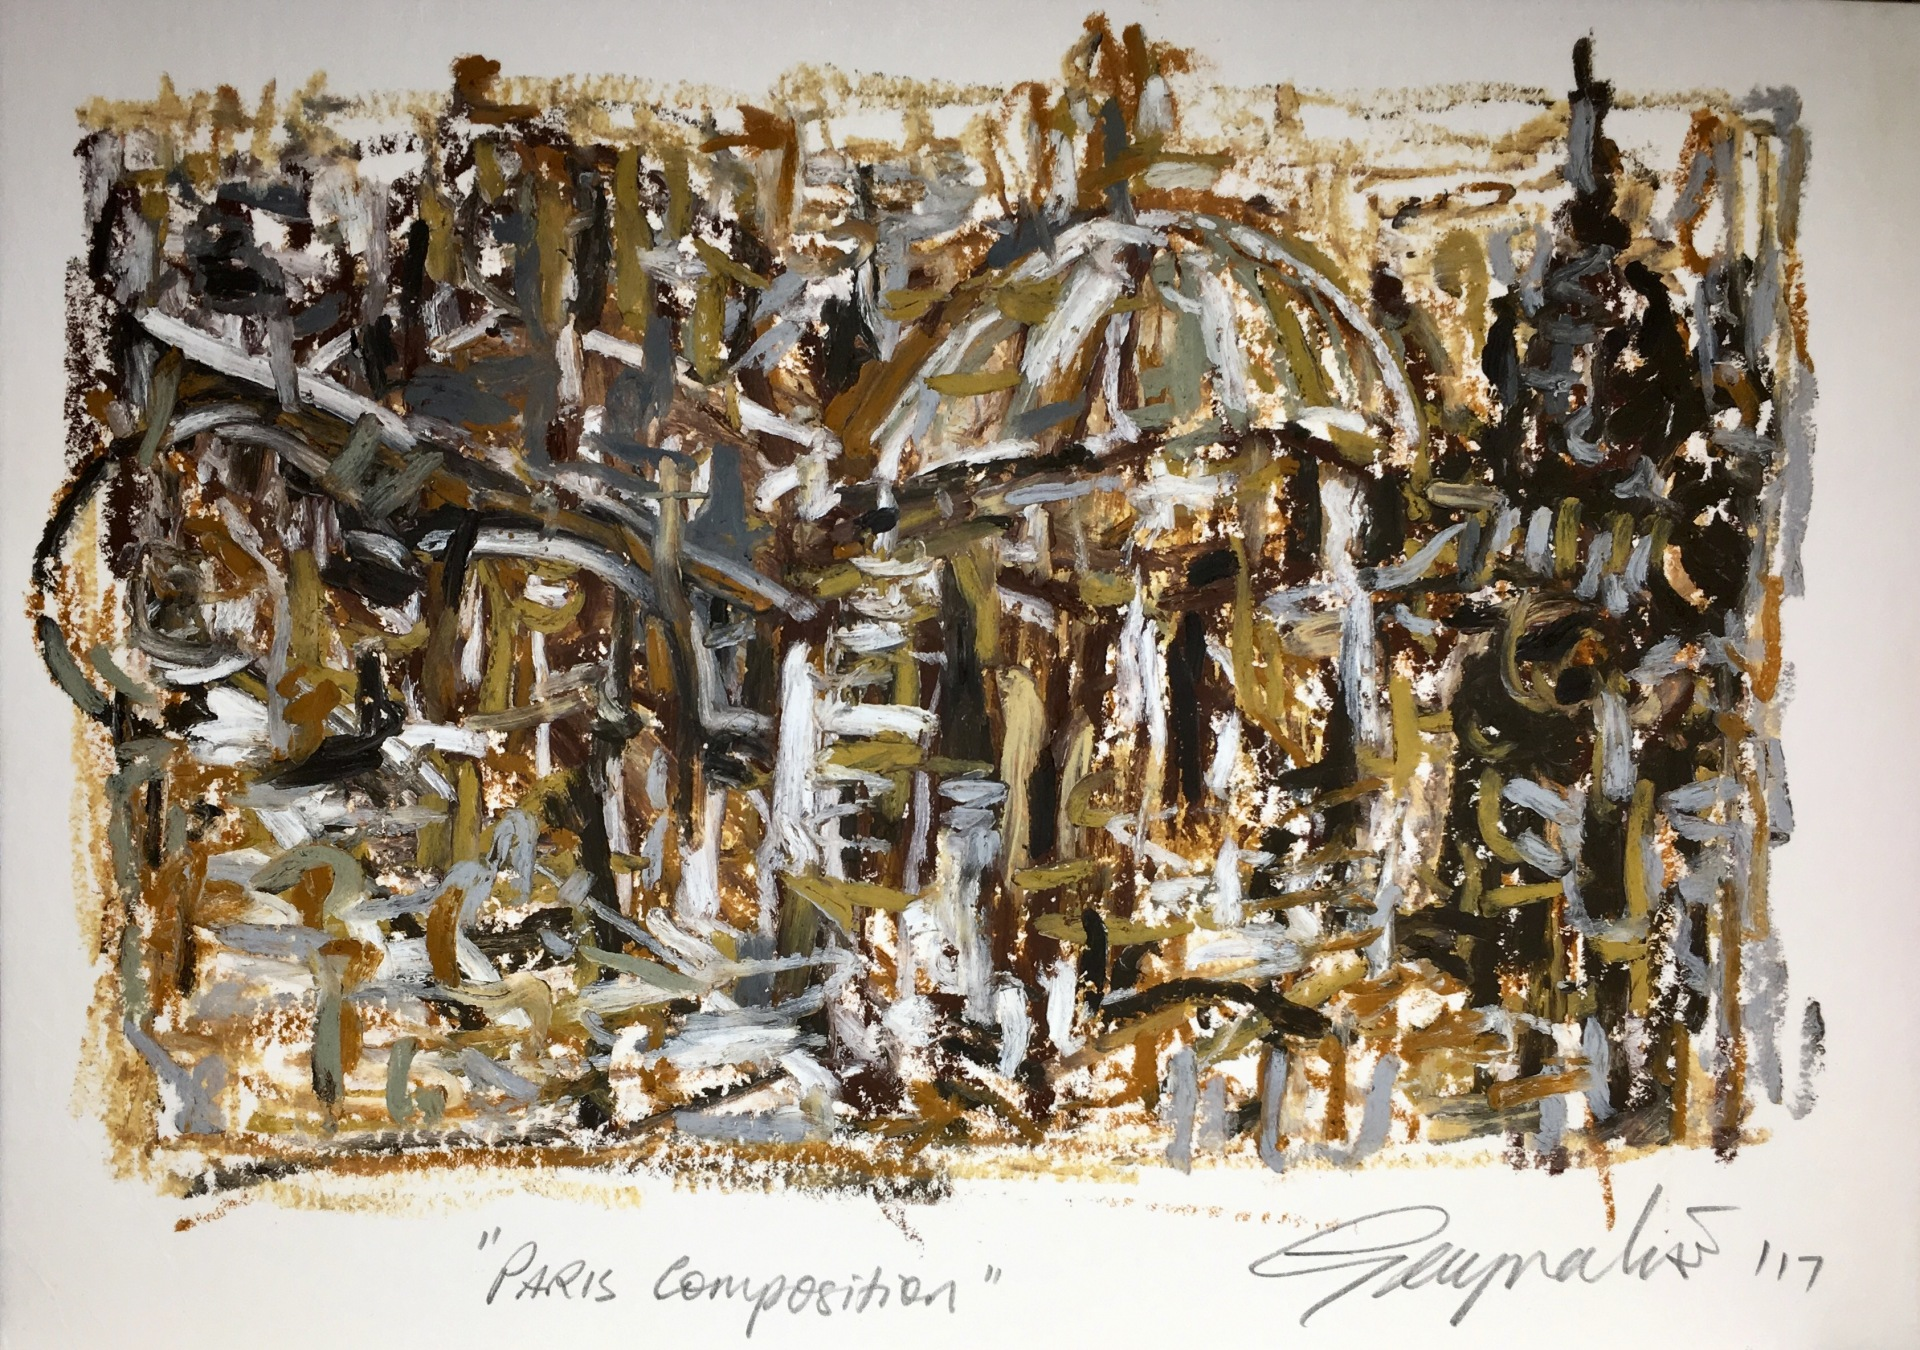 Paris Composition